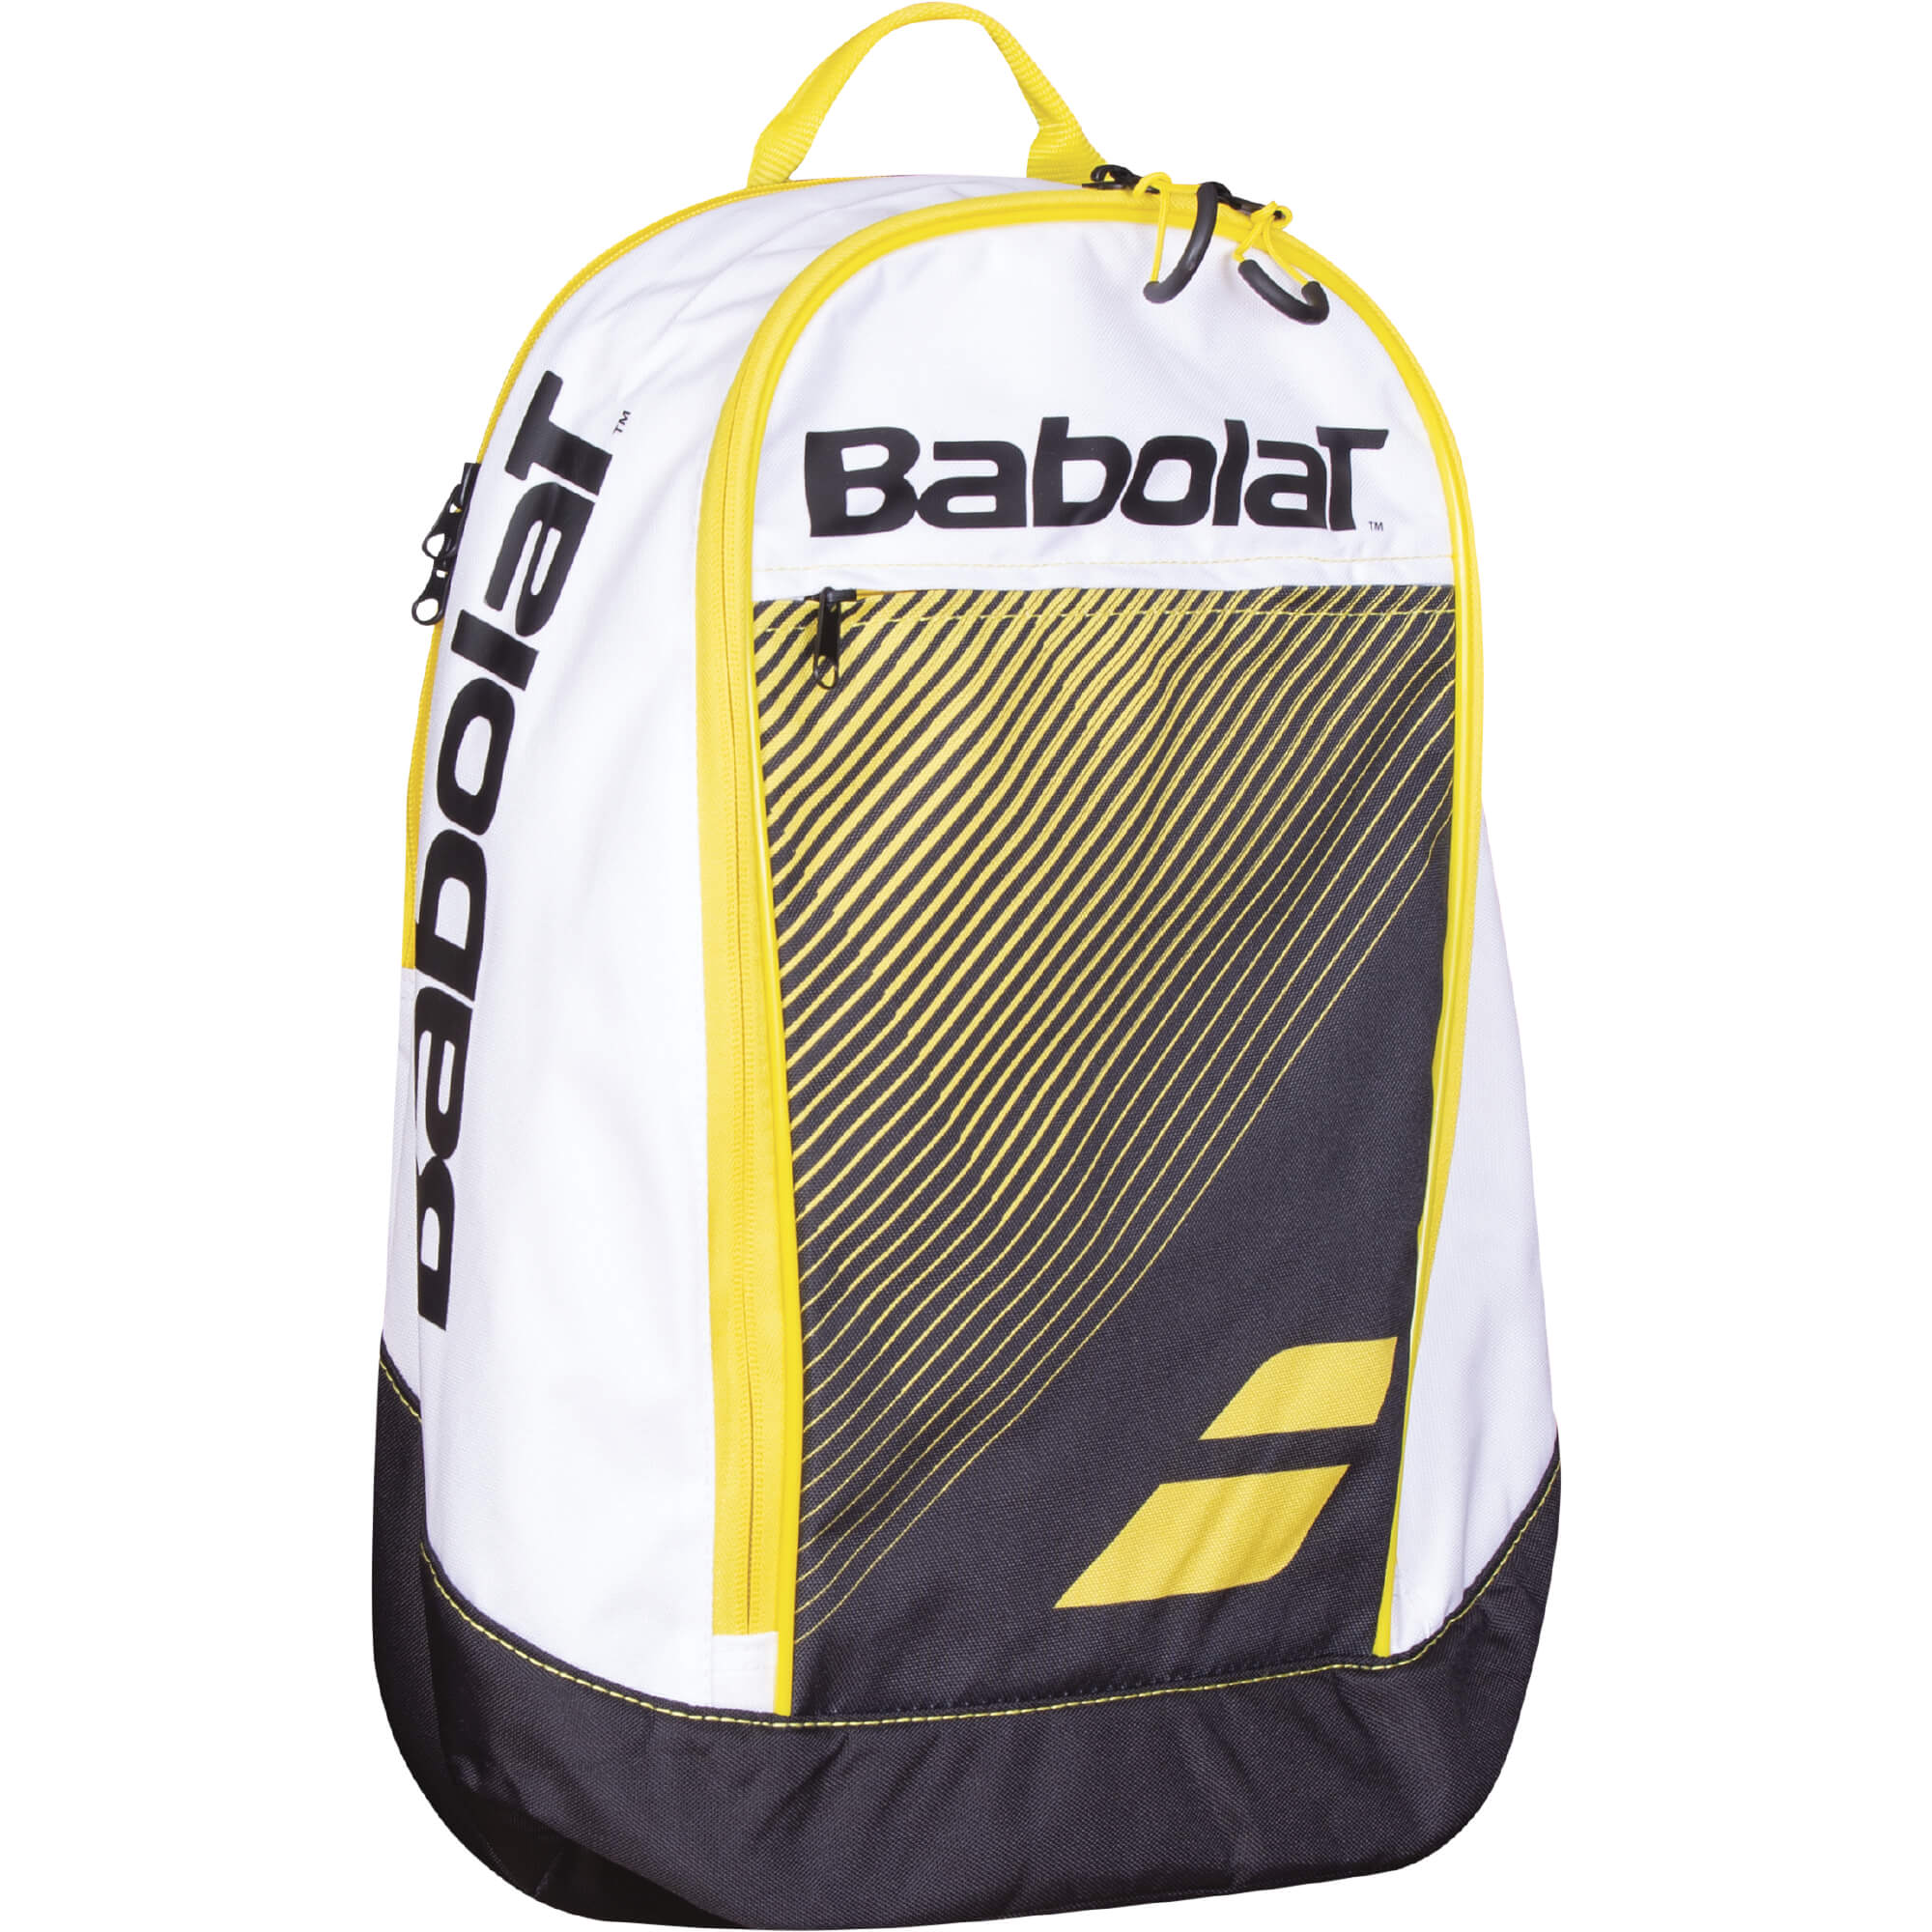 Club Backpack imagine